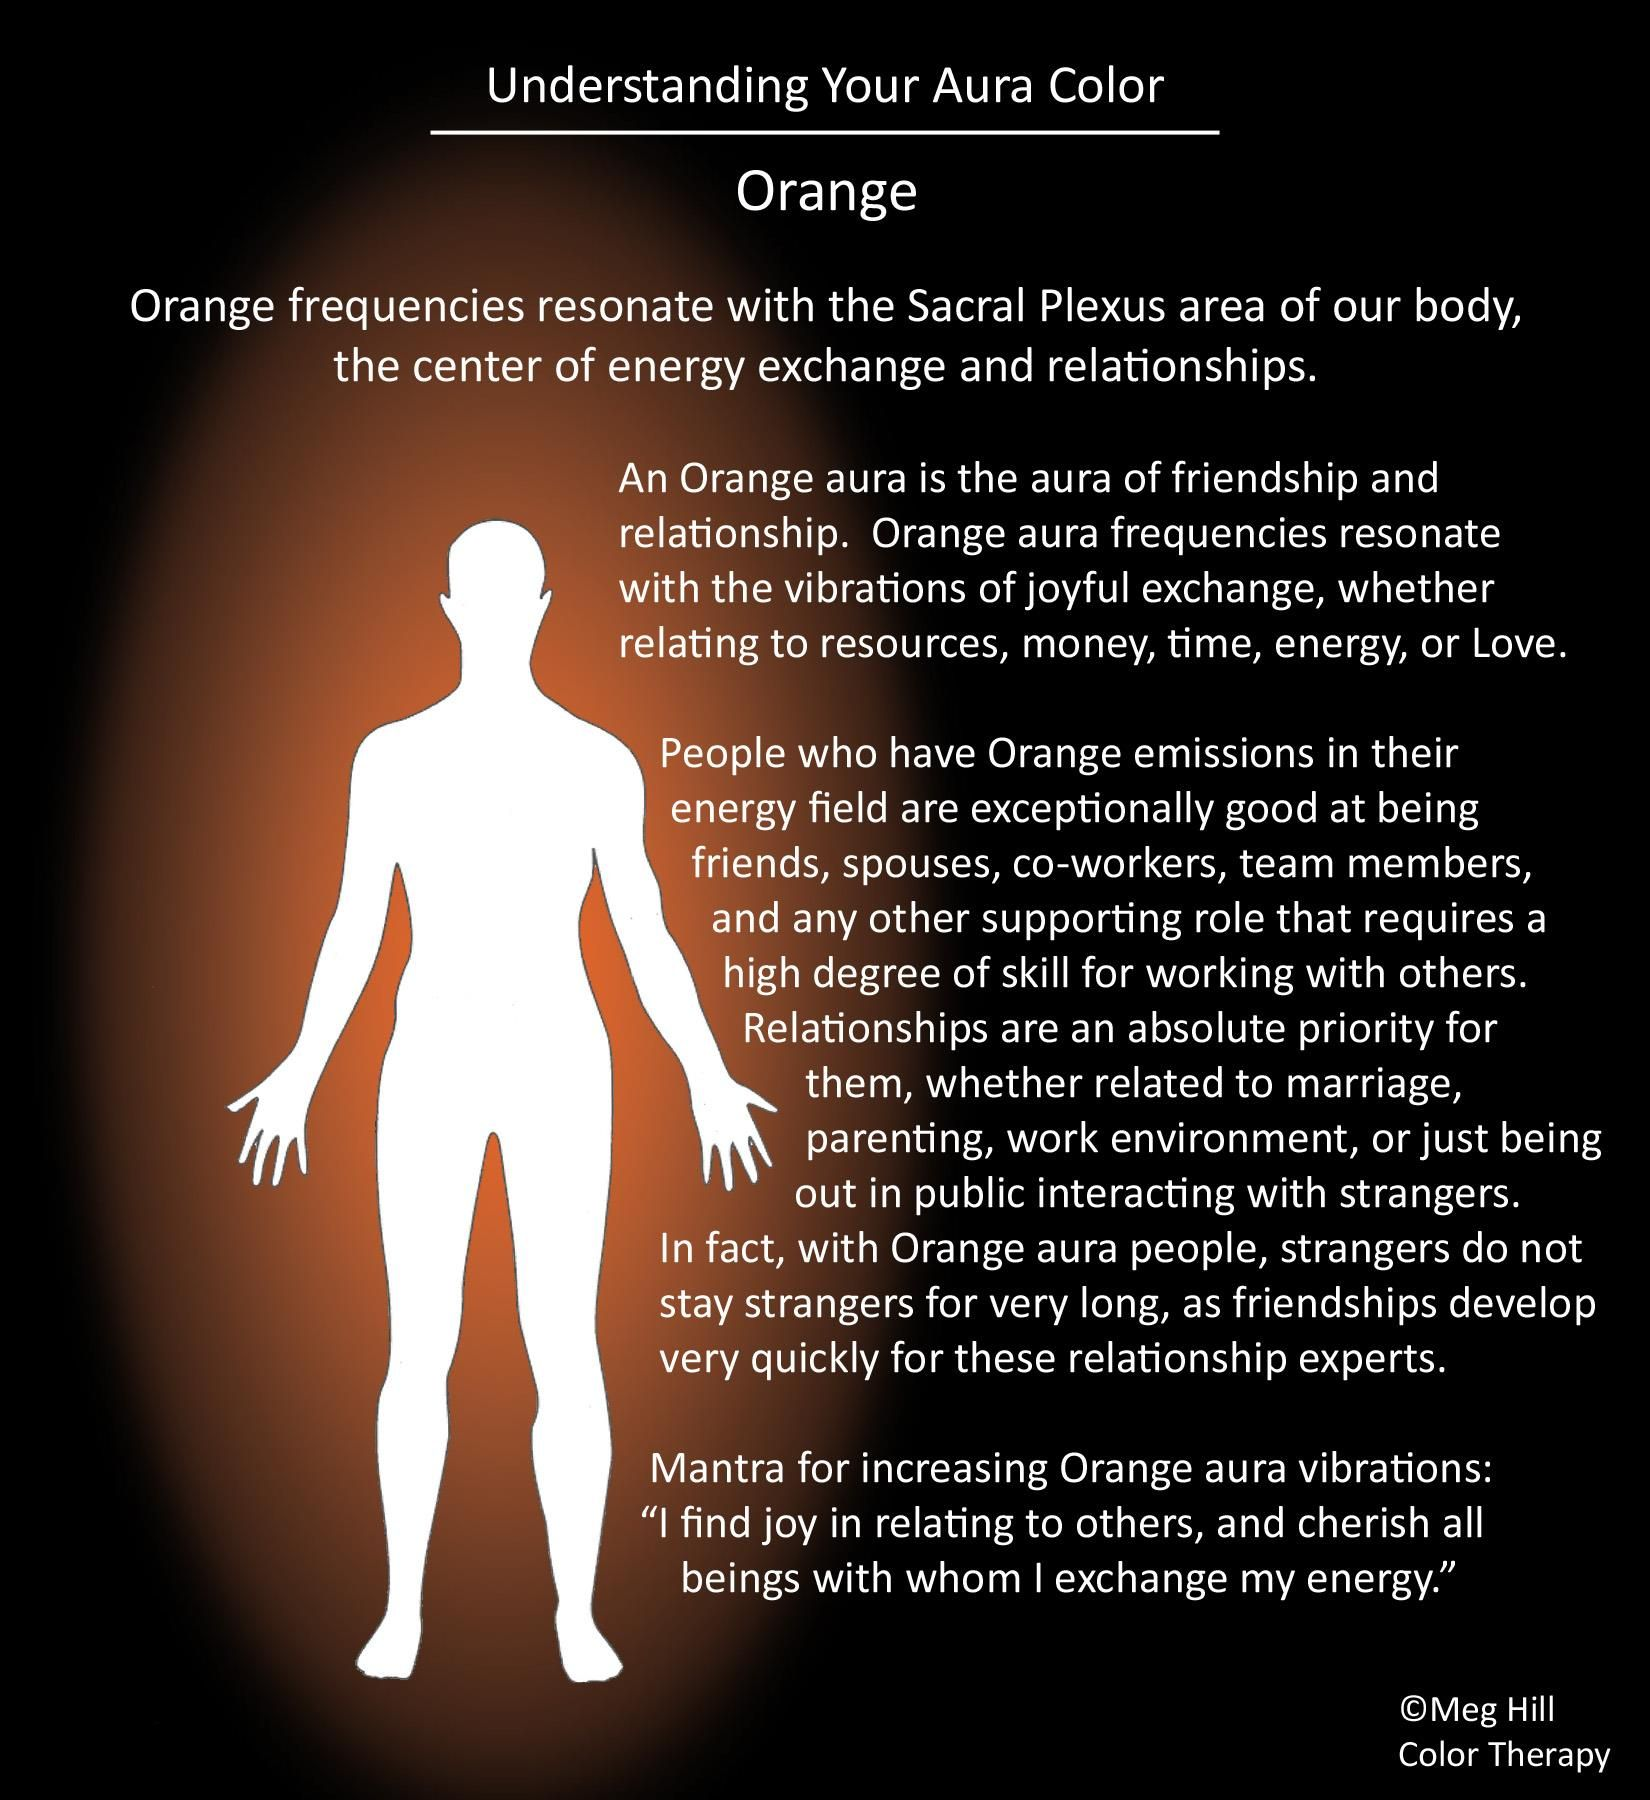 How to find my aura color